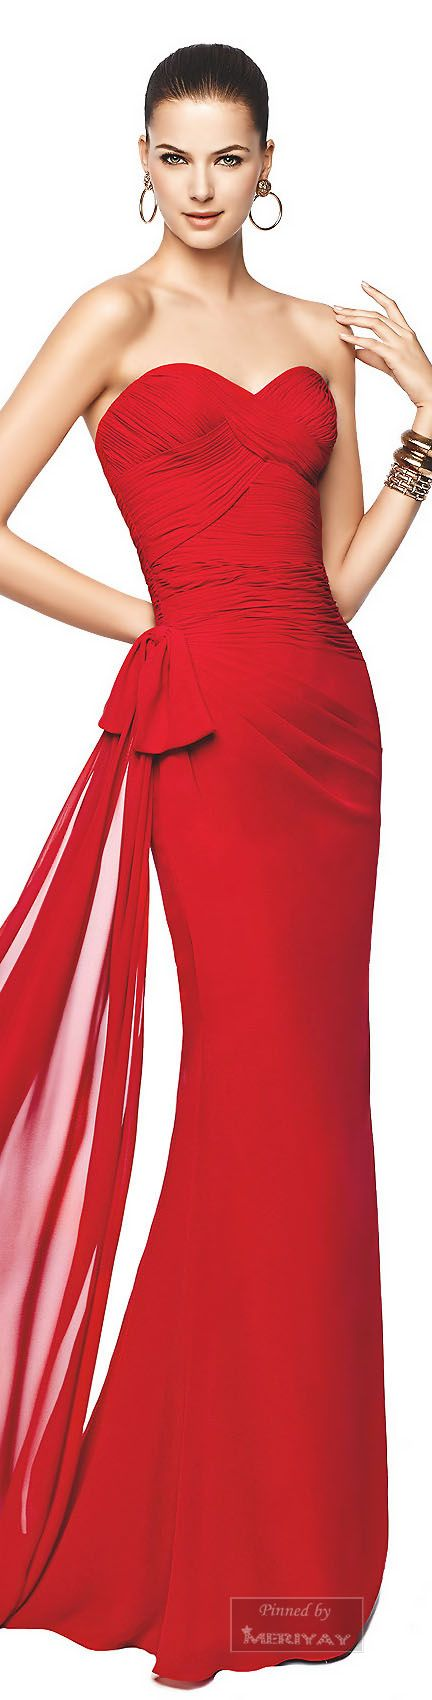 #formalwear - A beautiful Red ruched evening gown.  A strapless knock out dress for your formal special occasion. If you are interested in affordable custom evening dresses or replicas please contact us www.dariuscordell.com